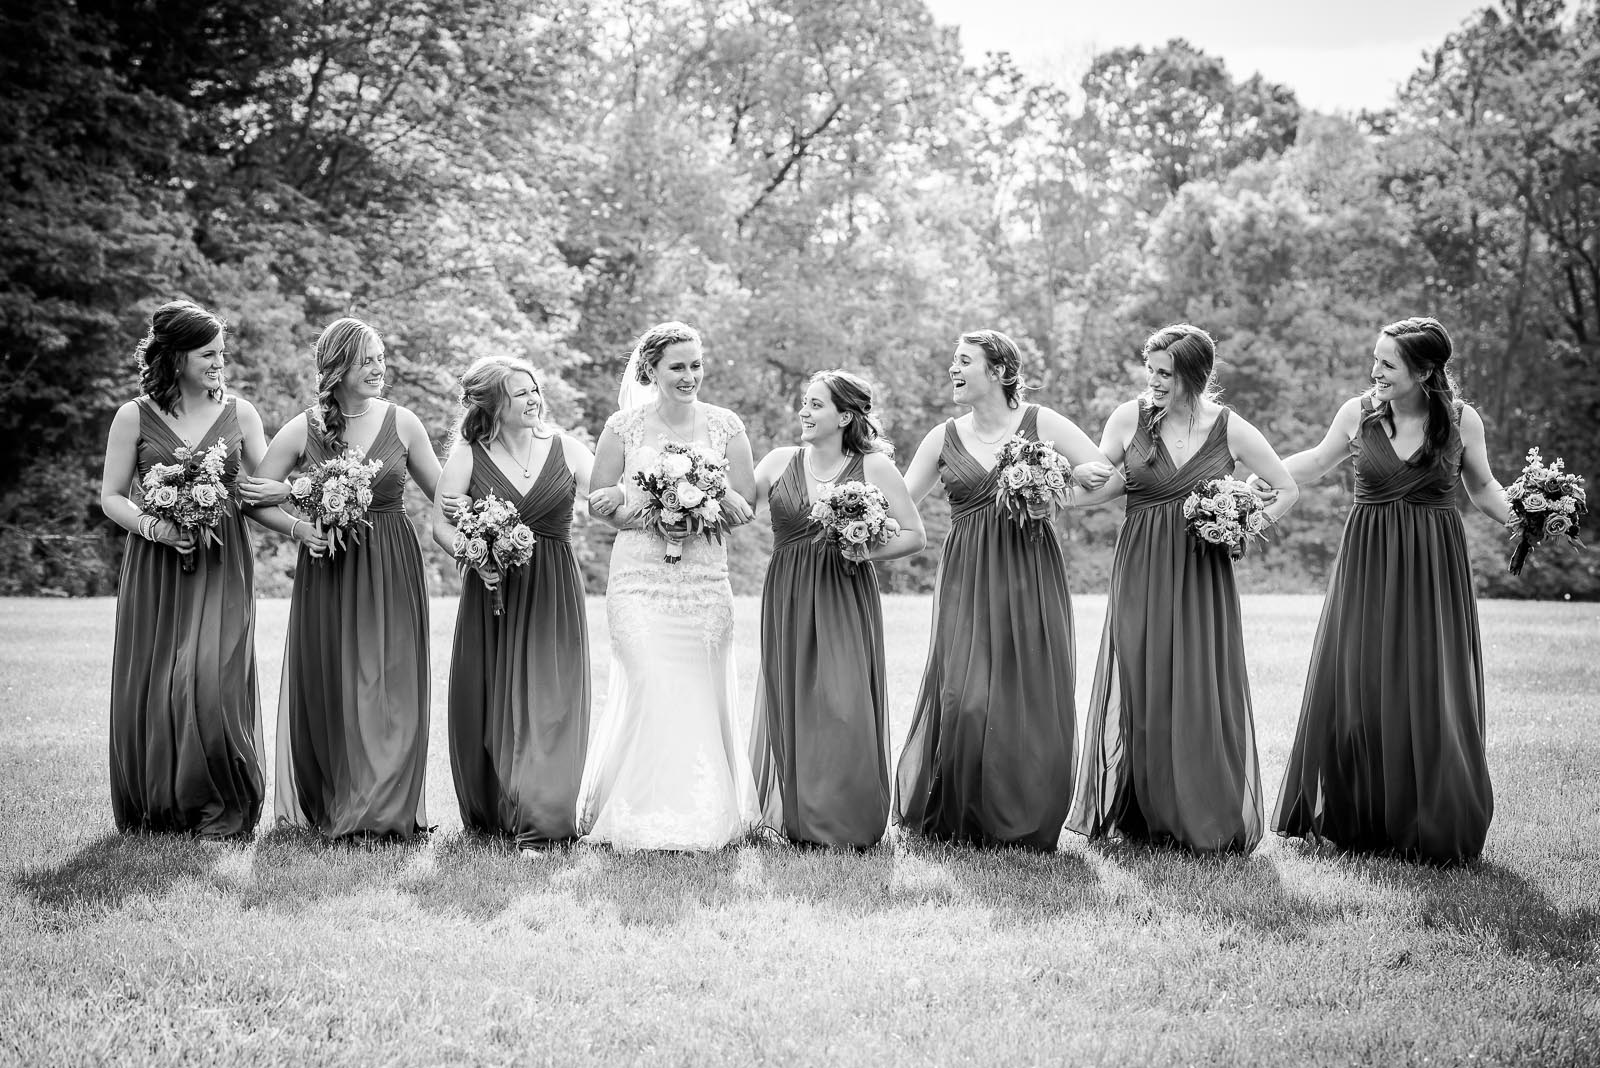 eric_and_christy_photographers_blog_wedding_katieandy-45